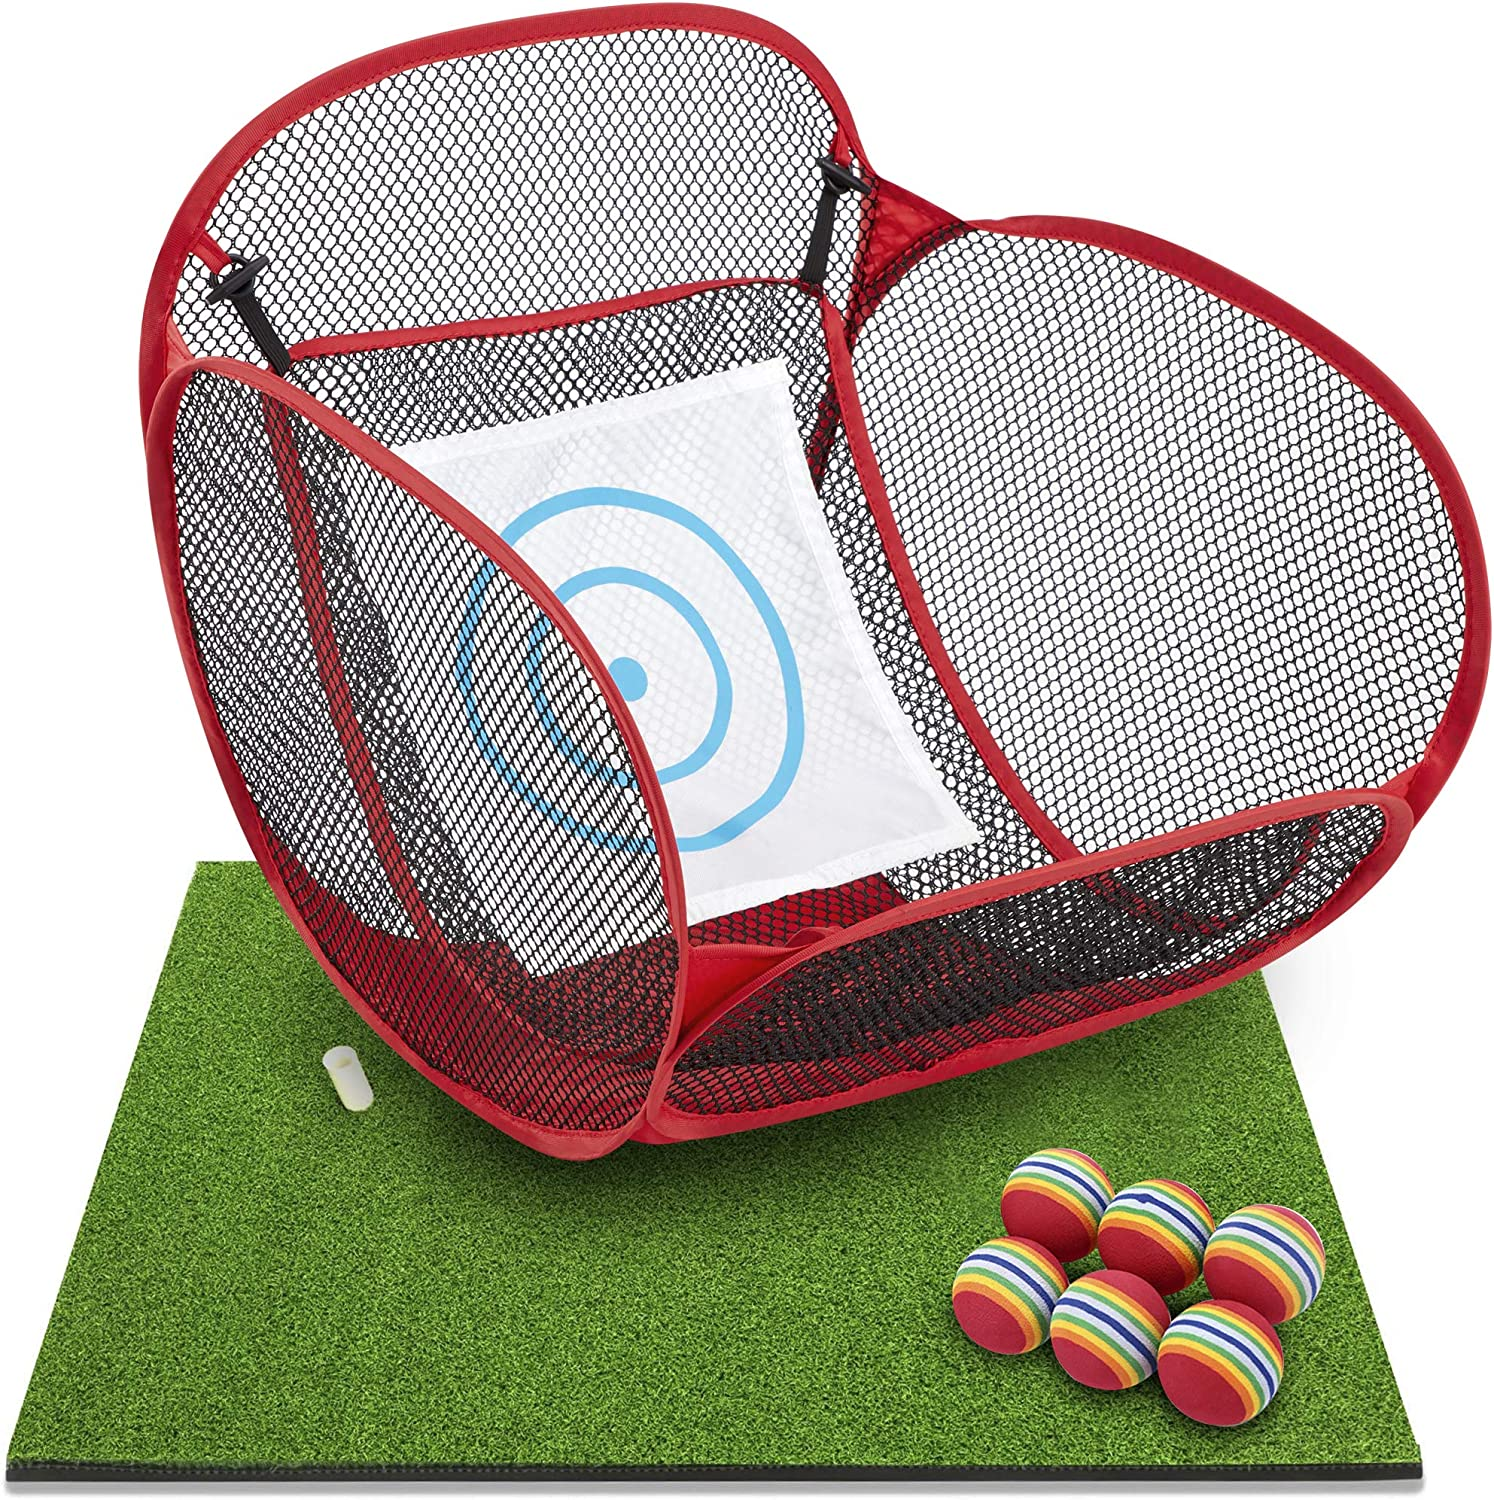 wosofe Kids Golf Chipping Net Hitting and Practice Raleigh Mall mat Weekly update Faom 6 Ba